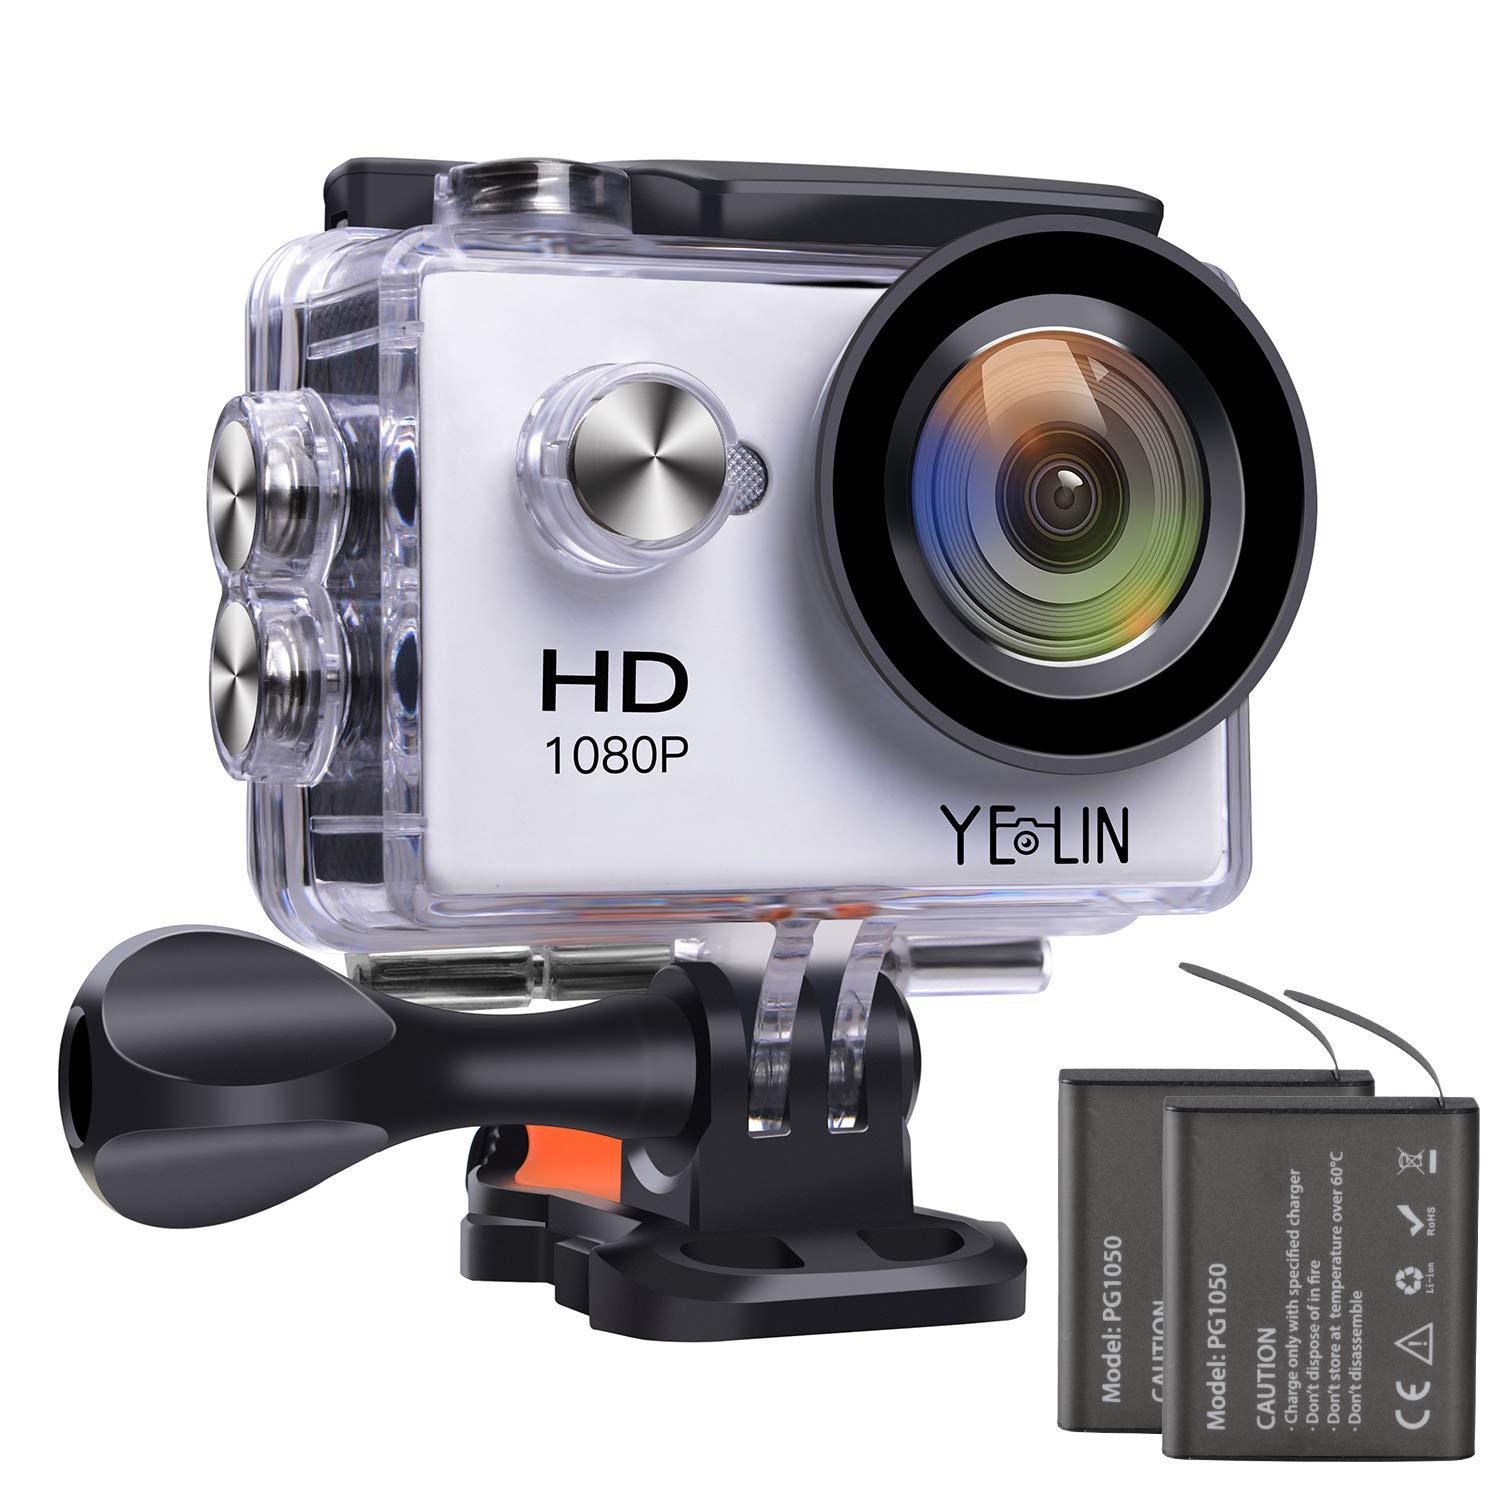 YELIN 1080P Action Camera Waterproof Sport Camera HD Camcorder Underwater Camera with 2 inch LCD Screen/170 Wide Angle Lens/2 Rechargeable Batteries (White)